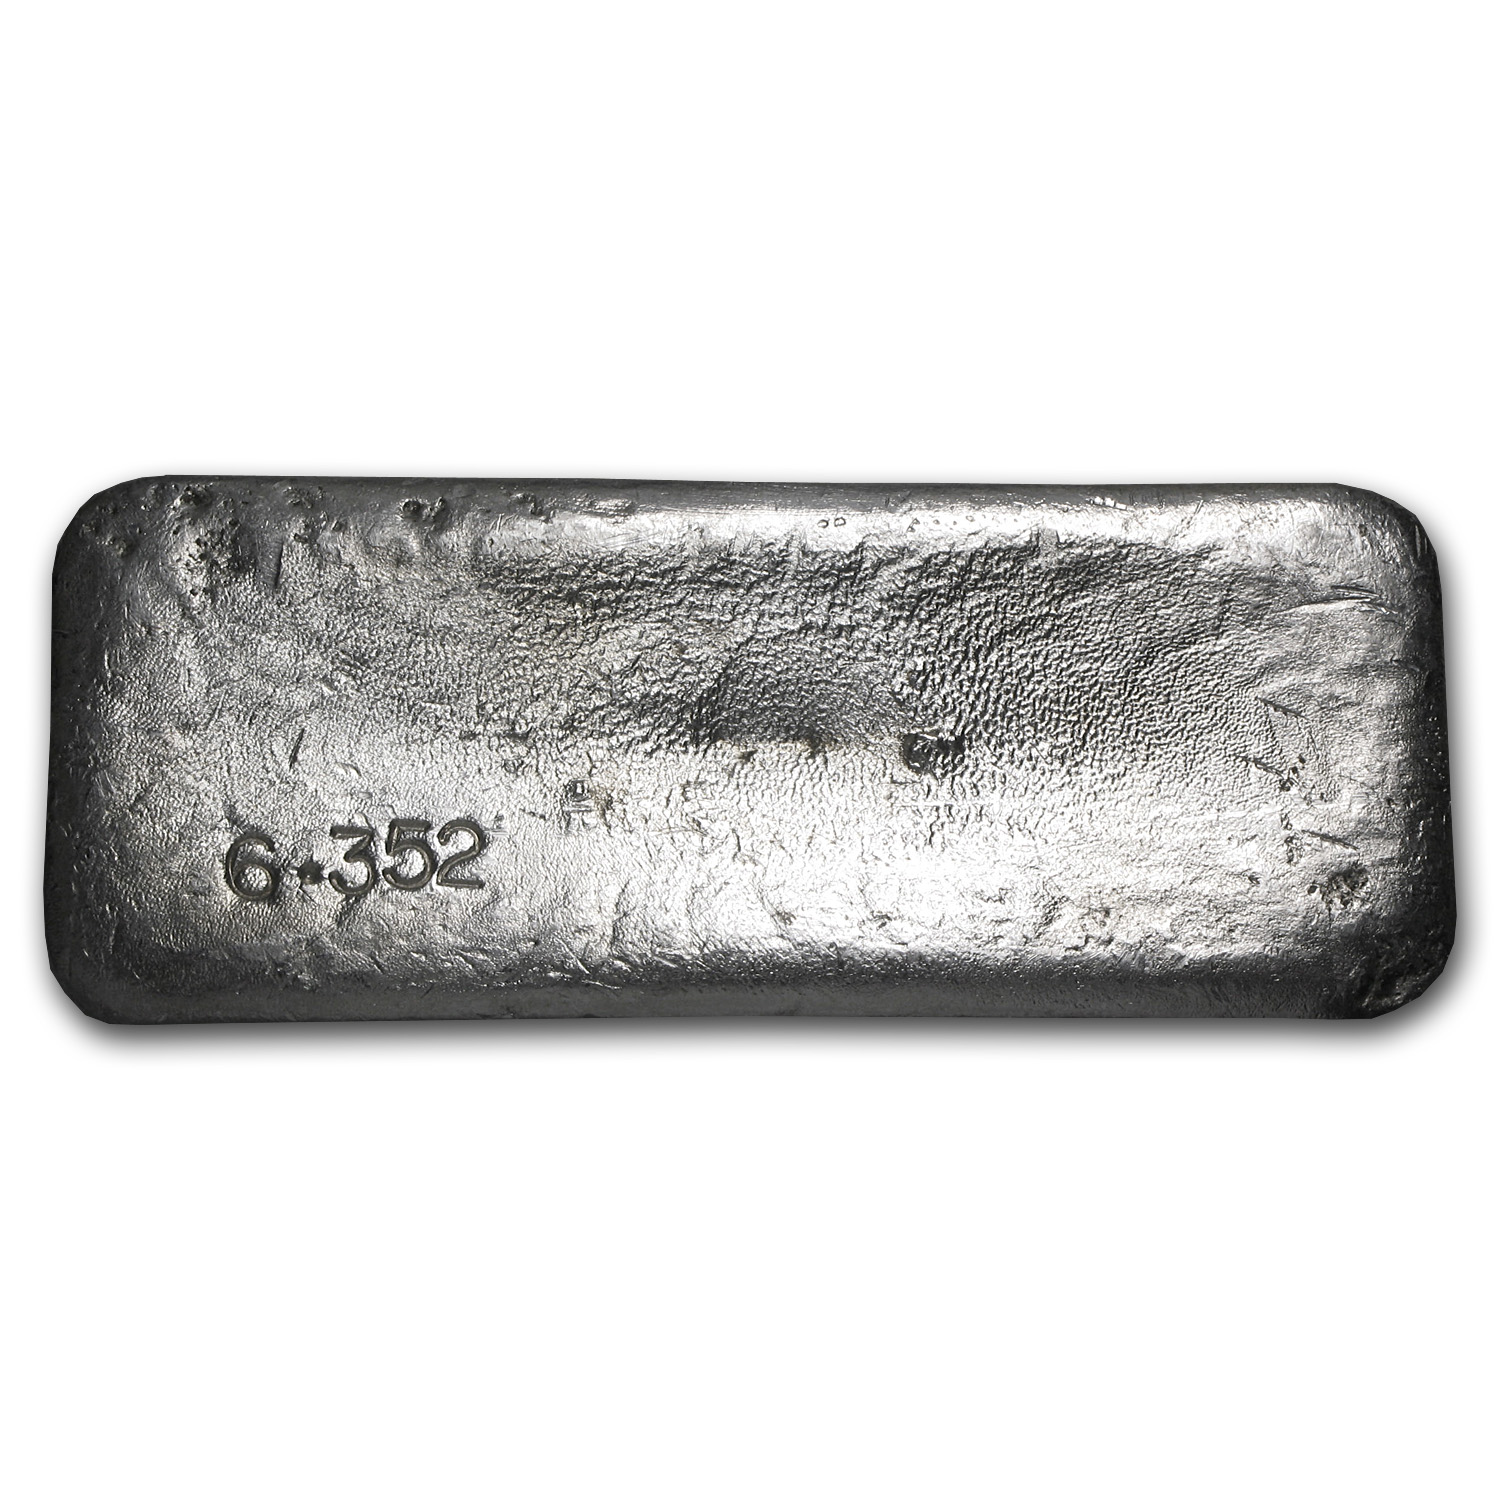 27.50 oz Silver Bars - Golden Analytical